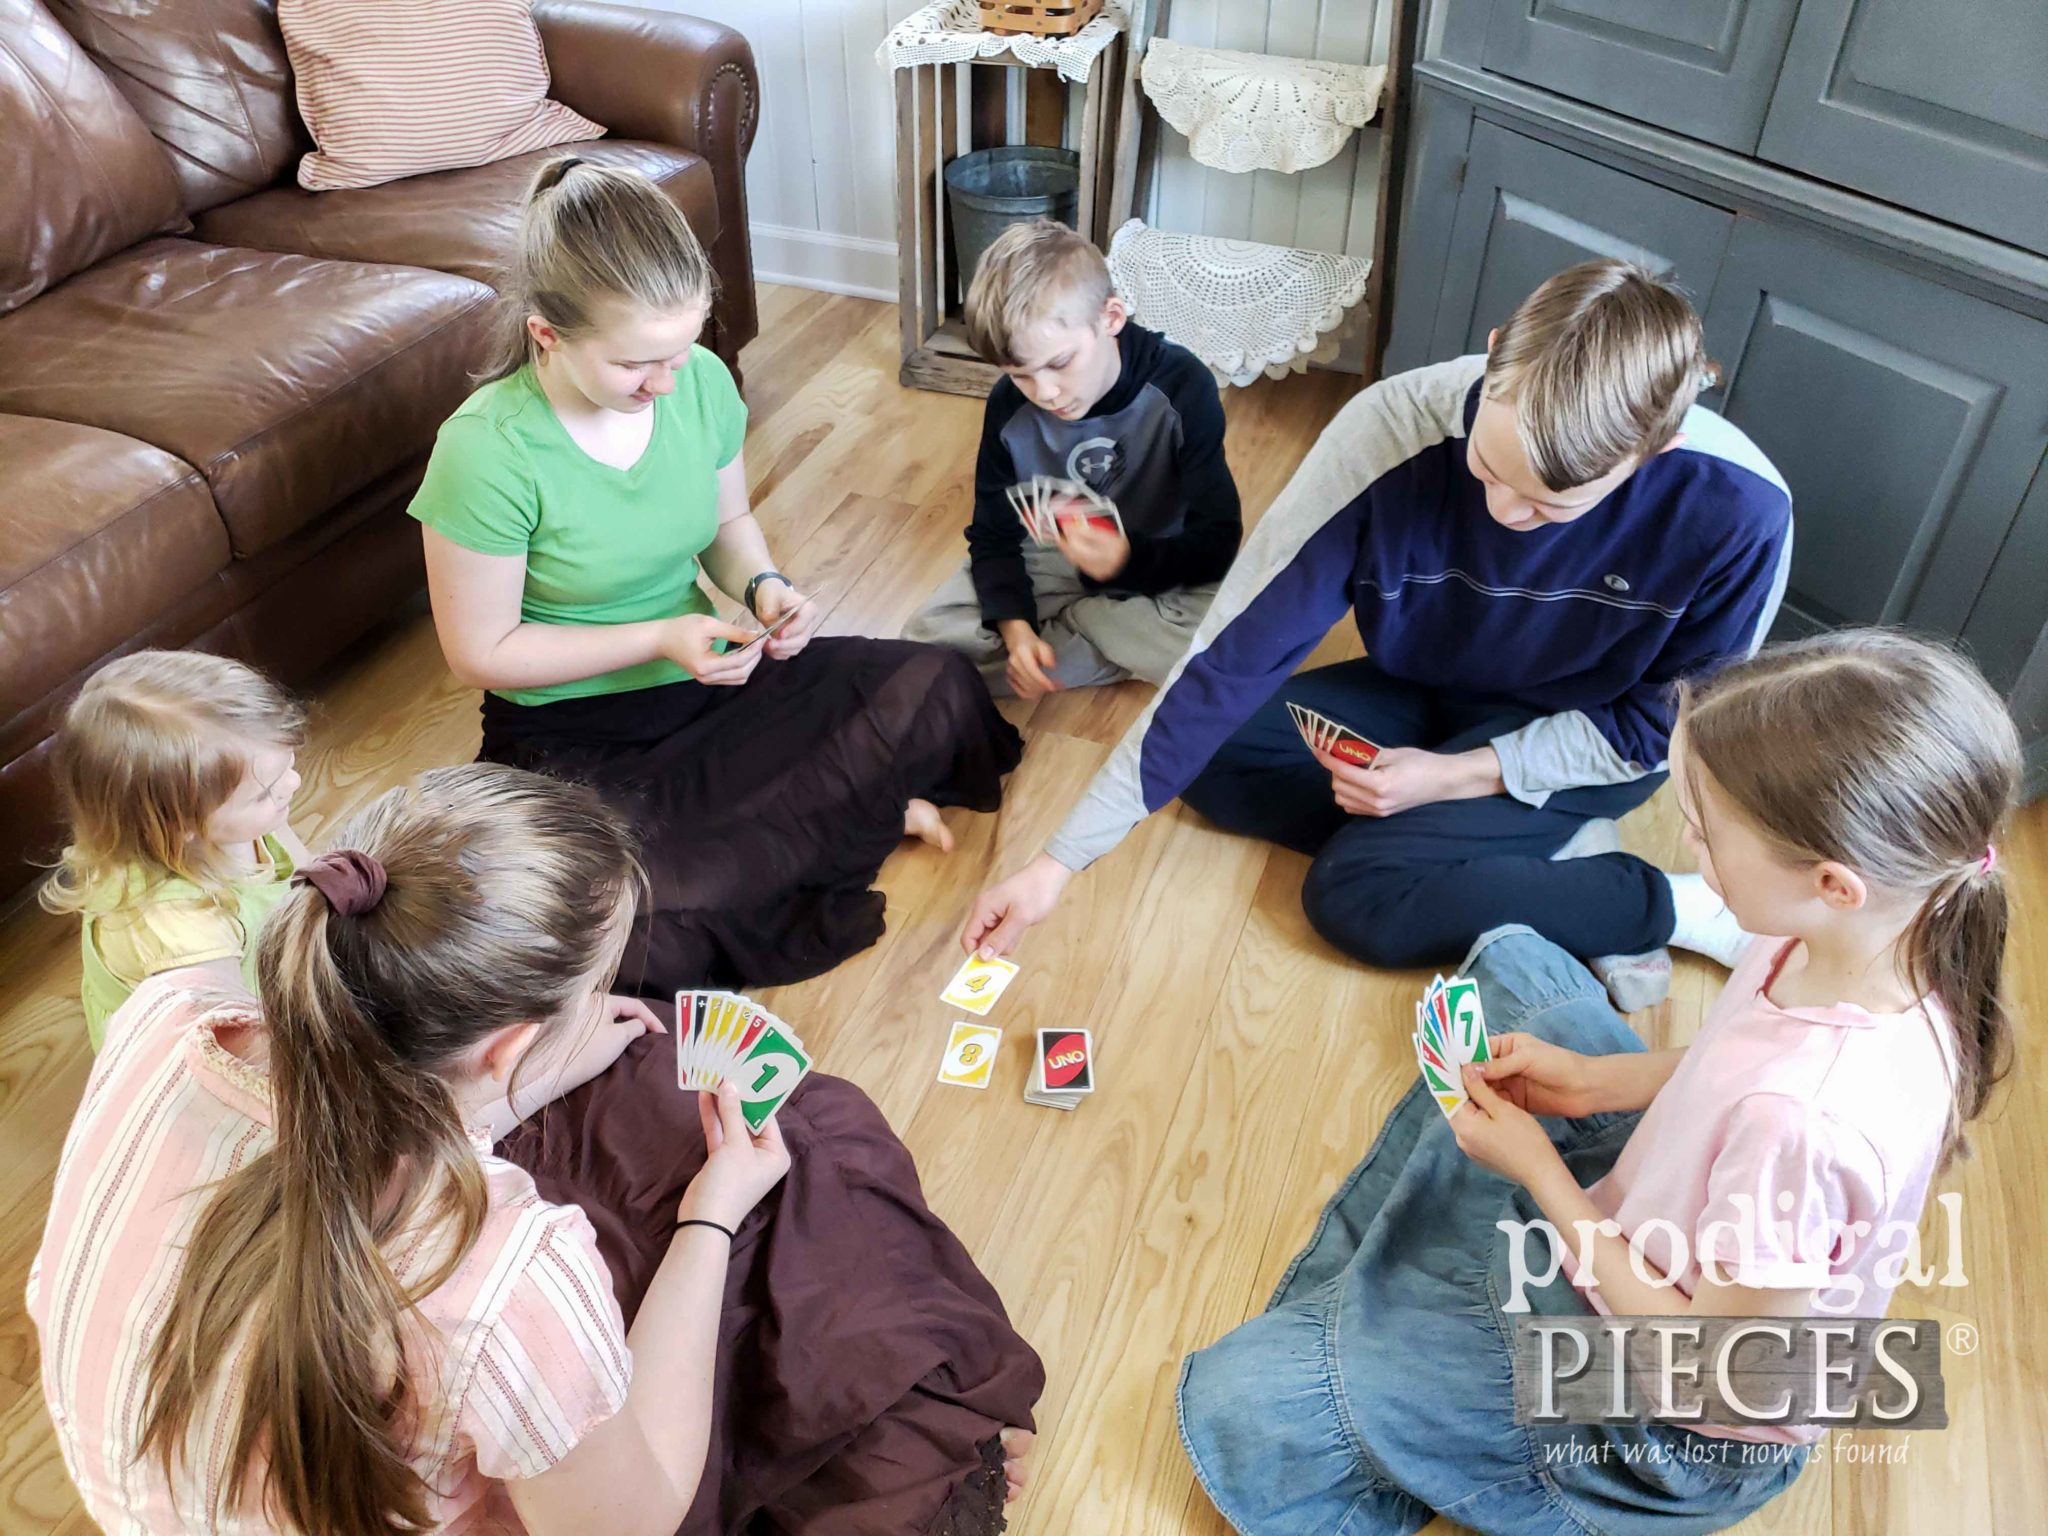 Kids Playing Cards at Home | prodigalpieces.com #homeisthekey #prodigalpieces #home